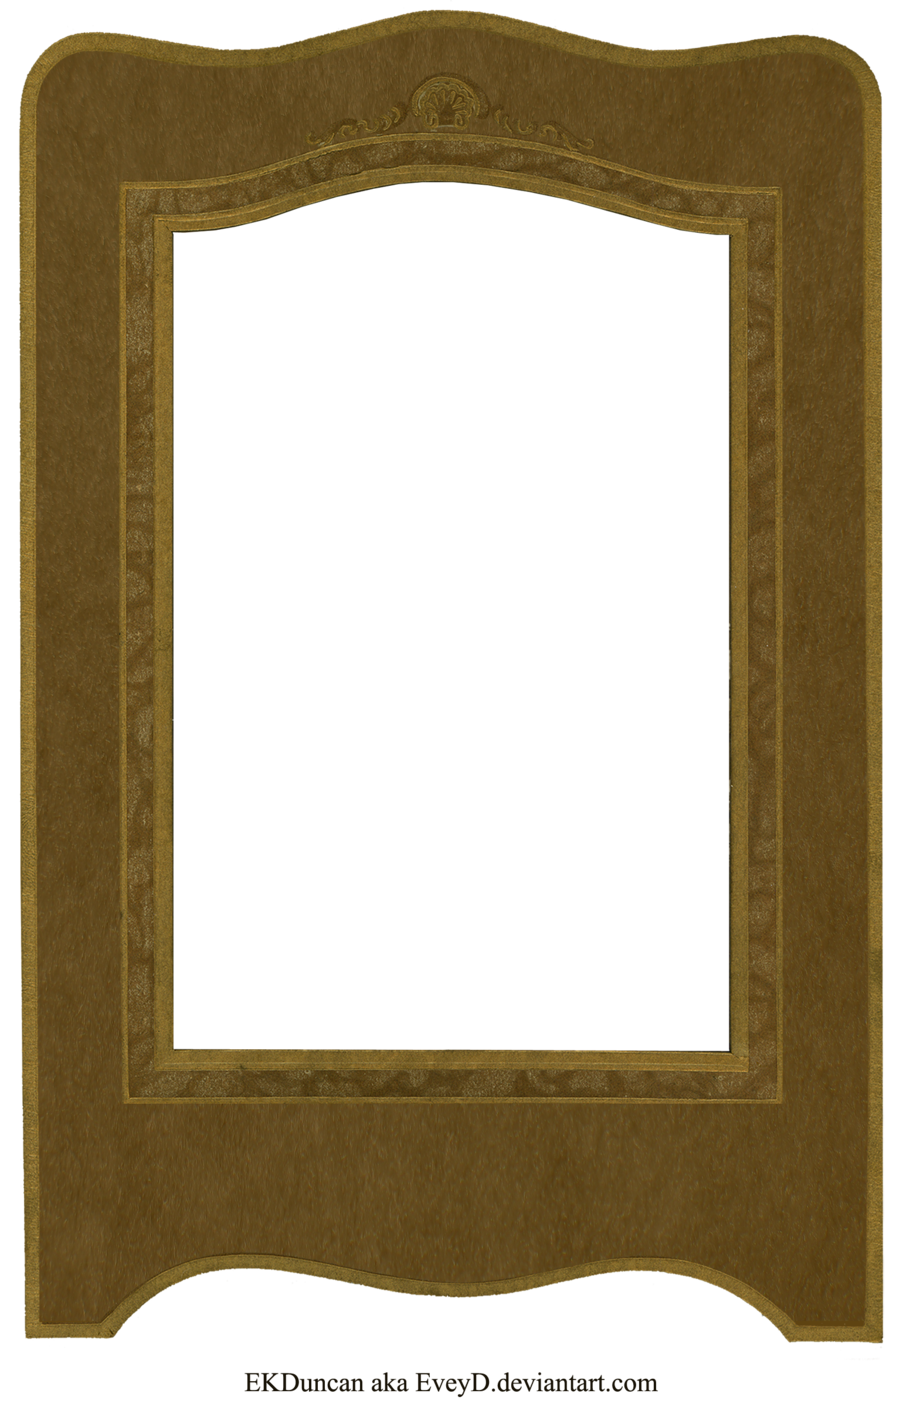 Clipart picture frames cross picture transparent library 1931 Vintage Photo Frame from Pressed Cardboard by EveyD | Рамка ... picture transparent library